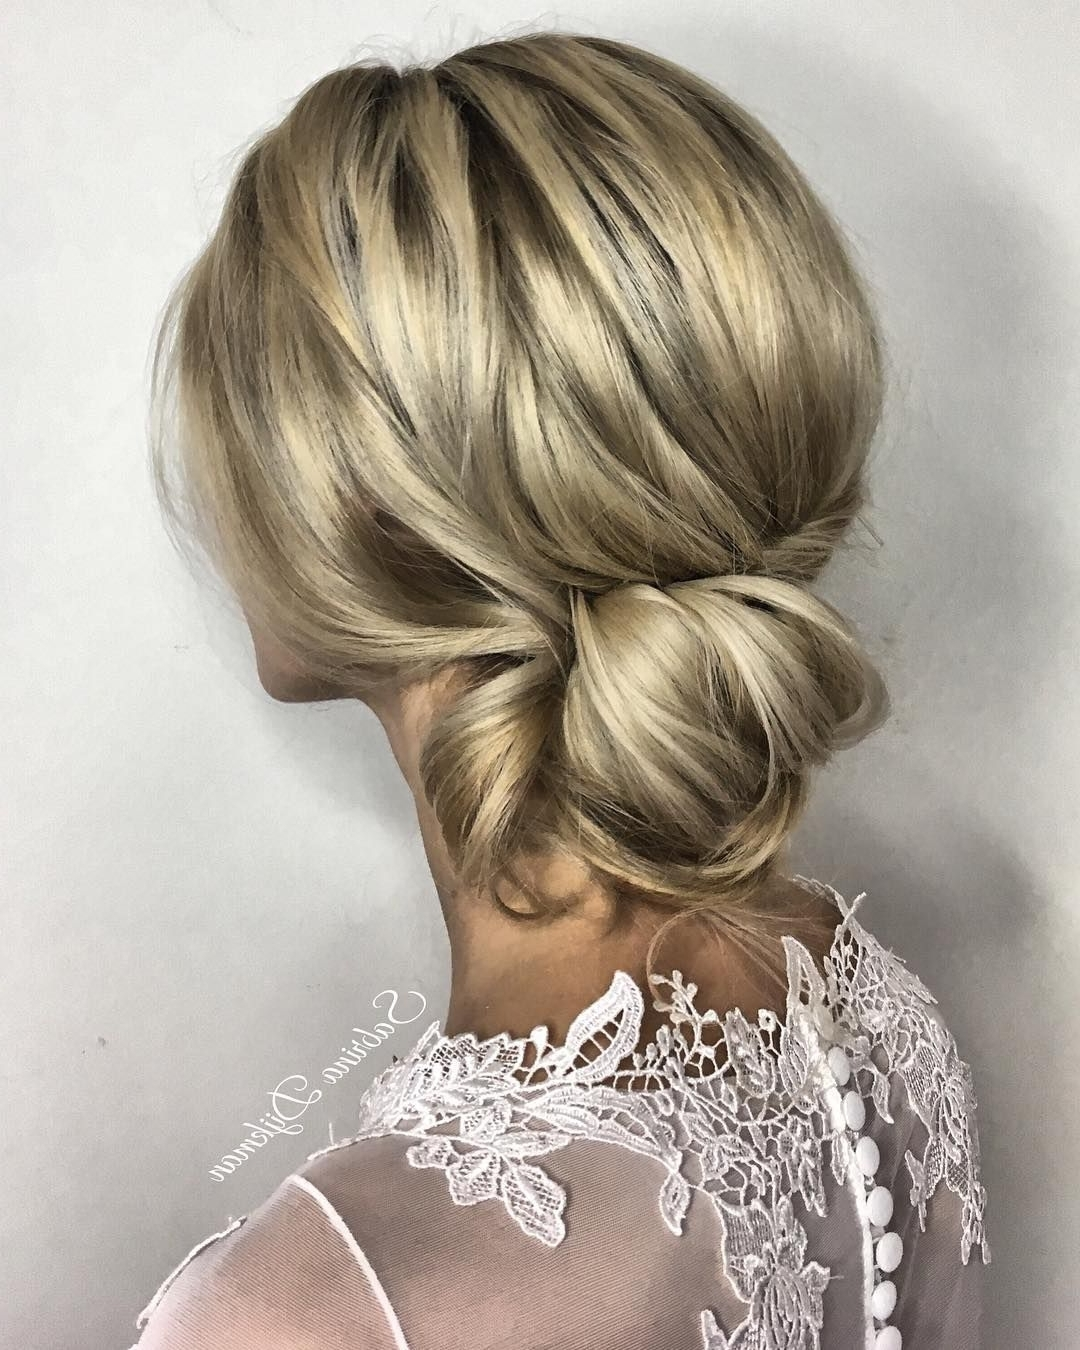 79 Beautiful Bridal Updos Wedding Hairstyles For A Romantic Bridal Throughout Updo Hairstyles (View 5 of 15)